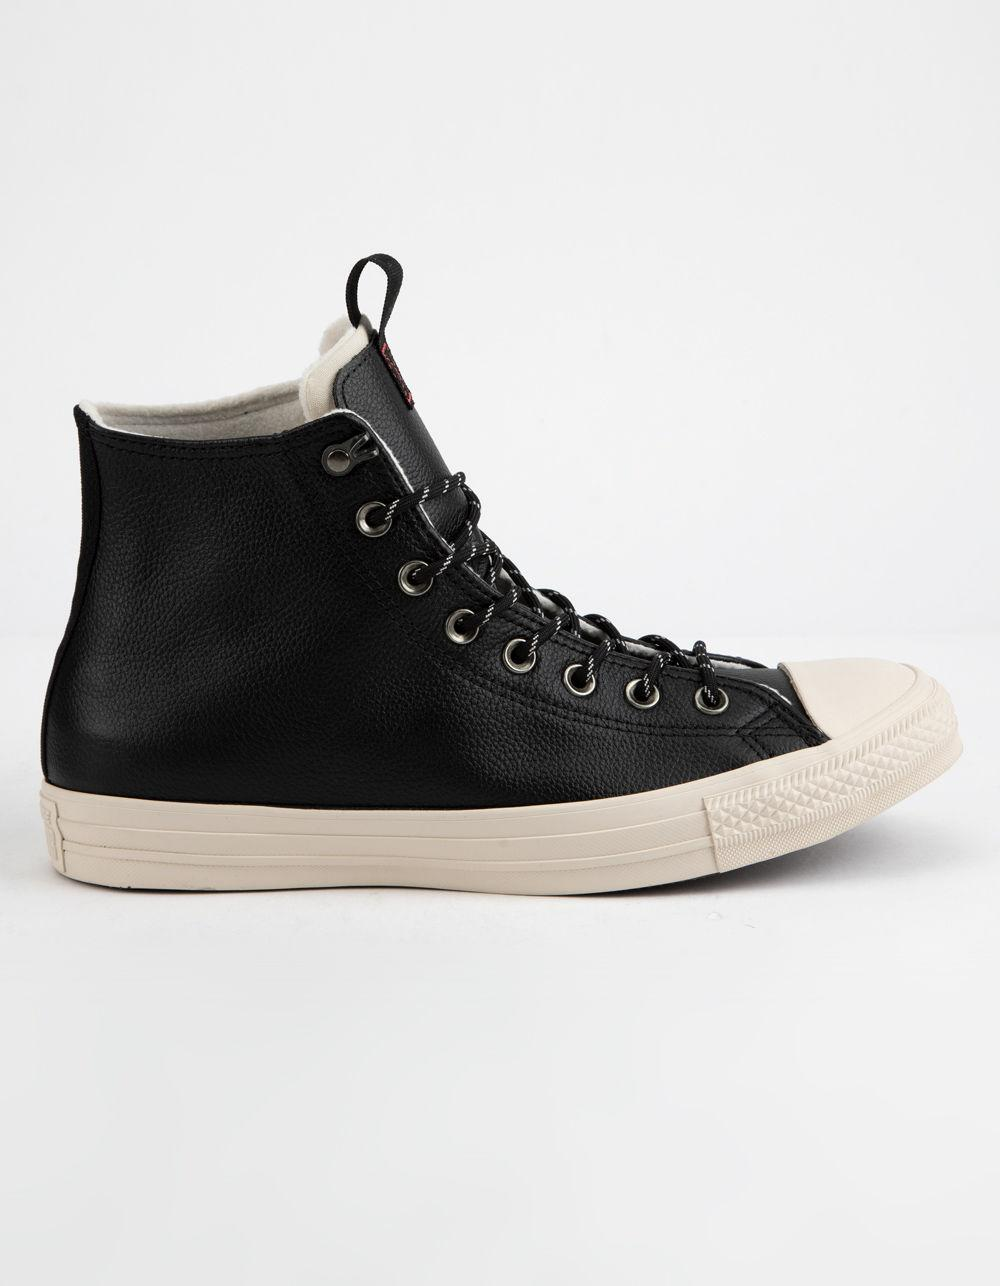 0db27acad6a4c4 Converse. Men s Chuck Taylor All Star Leather Black   Driftwood High Top  Shoes